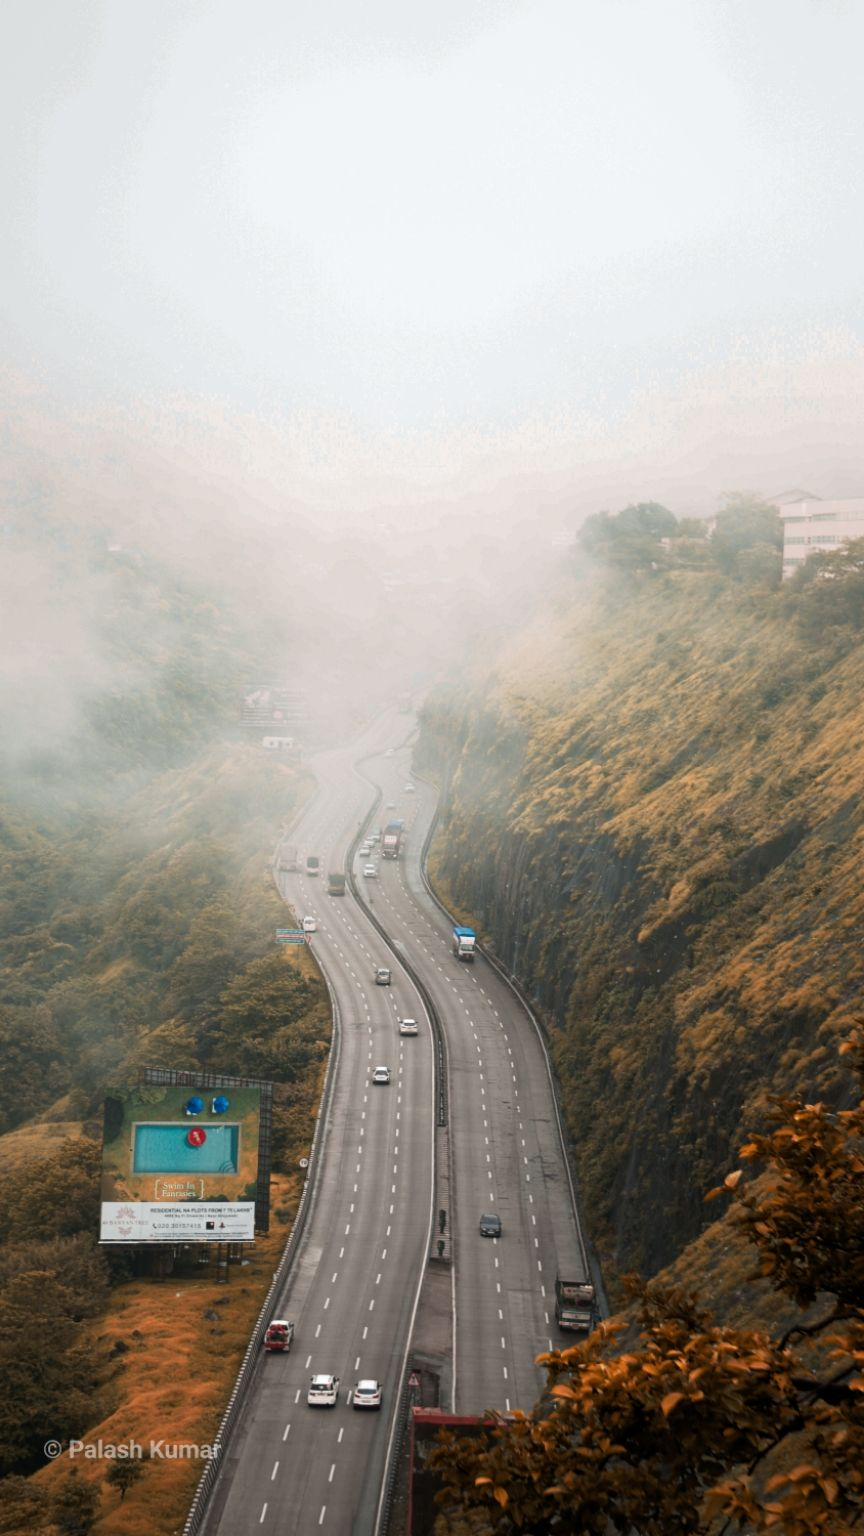 Photo of Lonavala By palash kumar